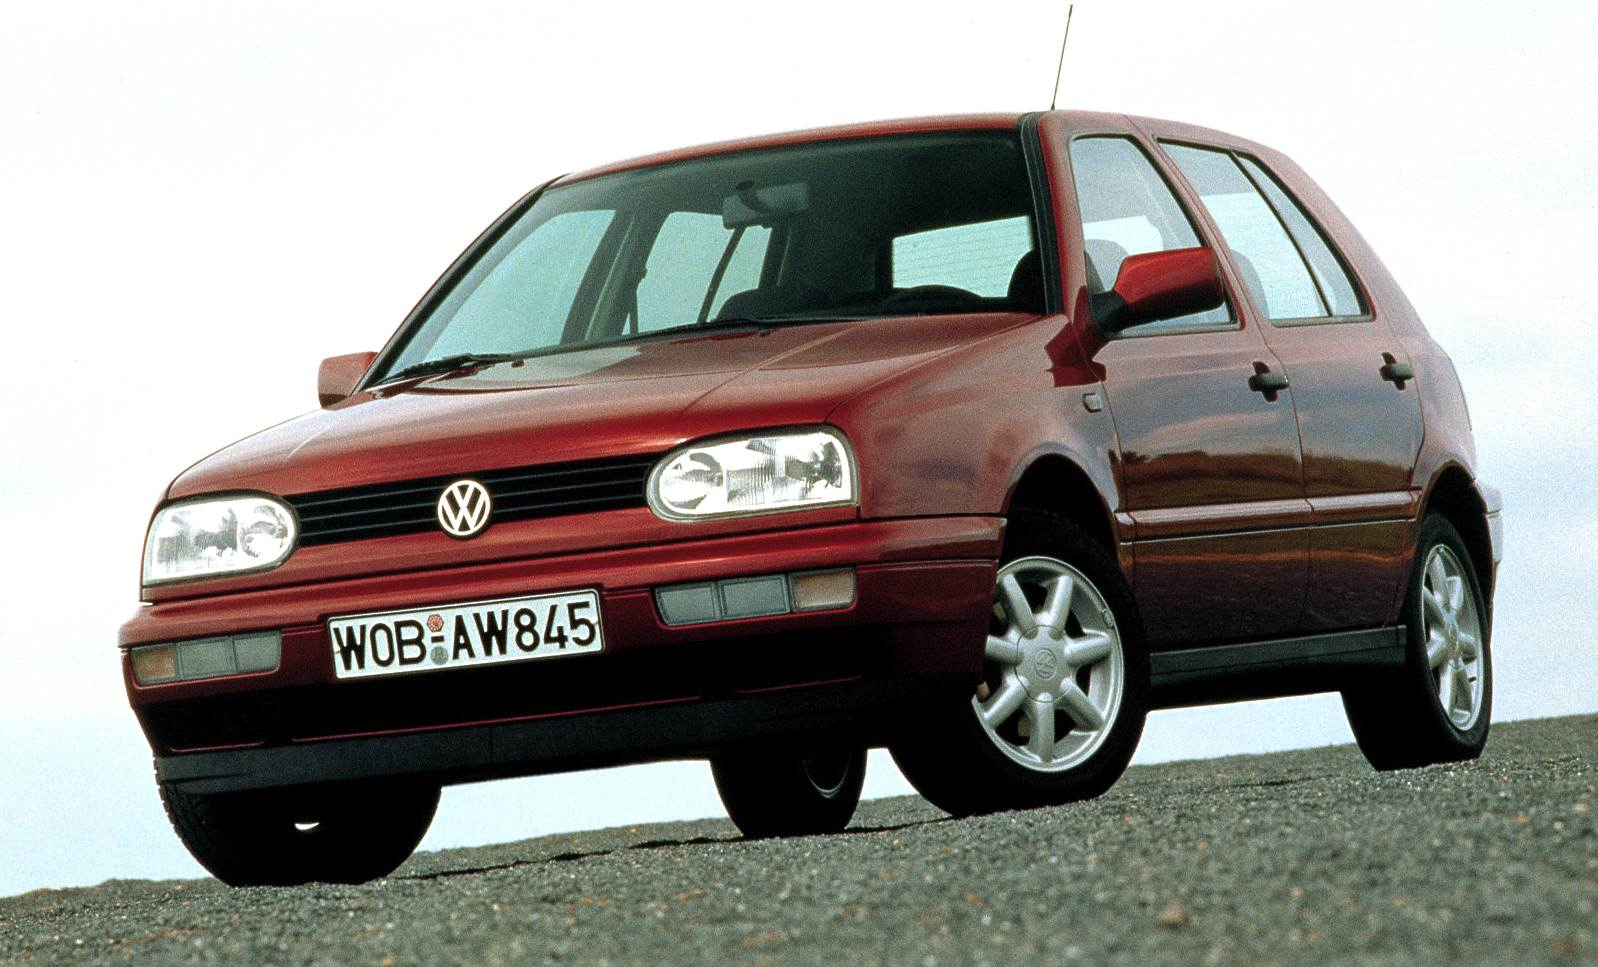 europe 1996 vw golf resists fiat punto assault best selling cars matt 39 s blog. Black Bedroom Furniture Sets. Home Design Ideas